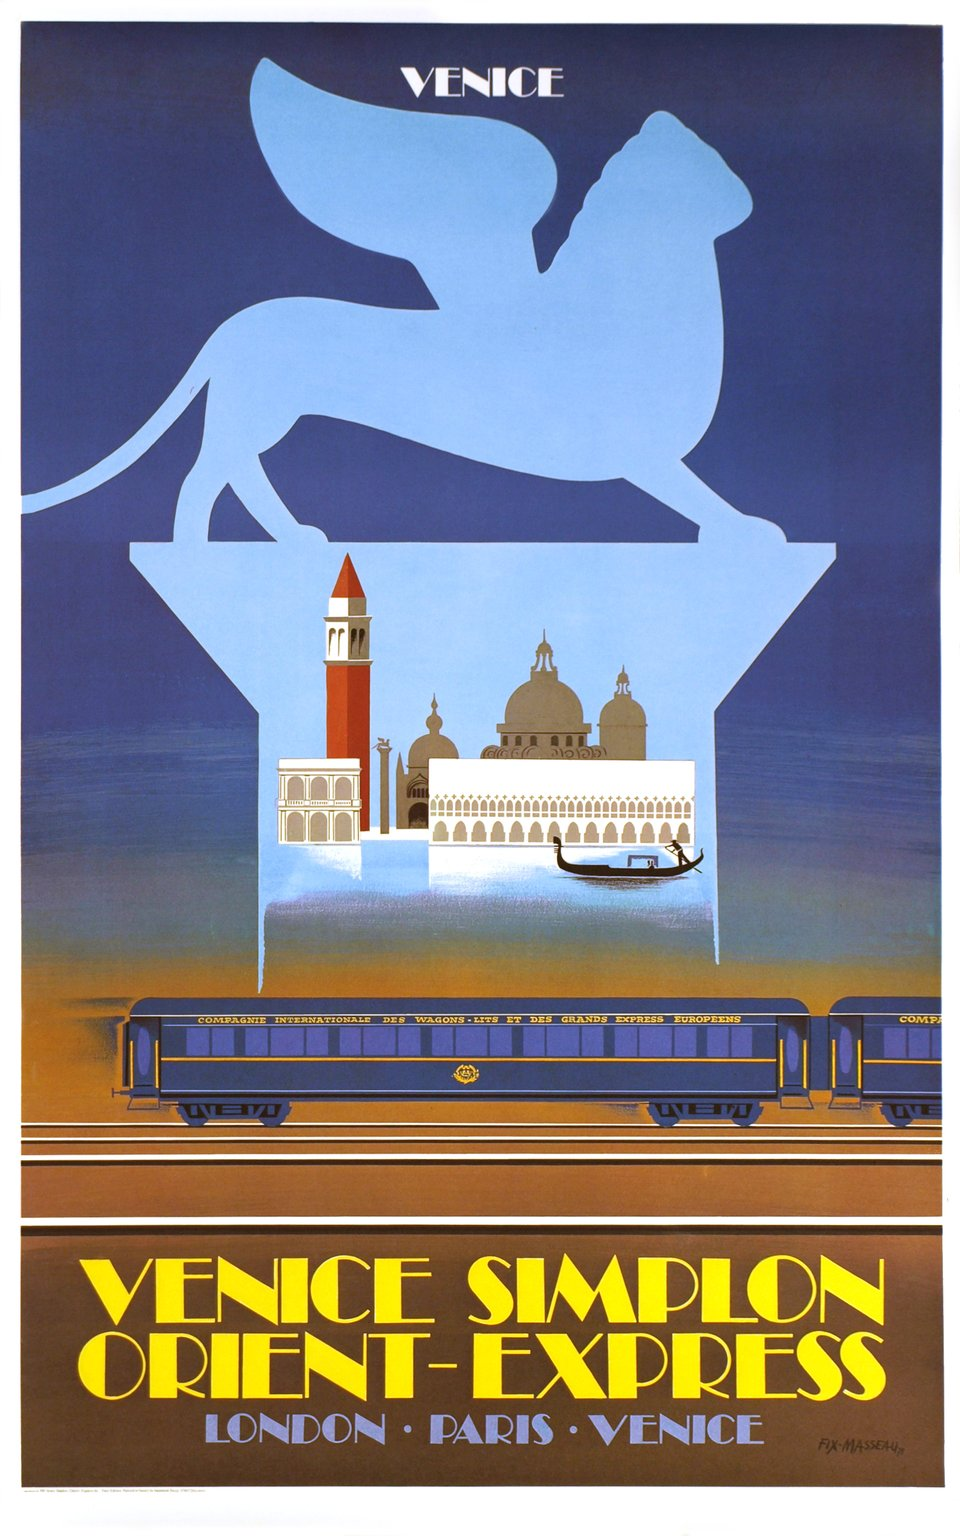 Venice Simplon Orient Express, London Paris Venice – Affiche ancienne – Pierre FIX-MASSEAU – 1981